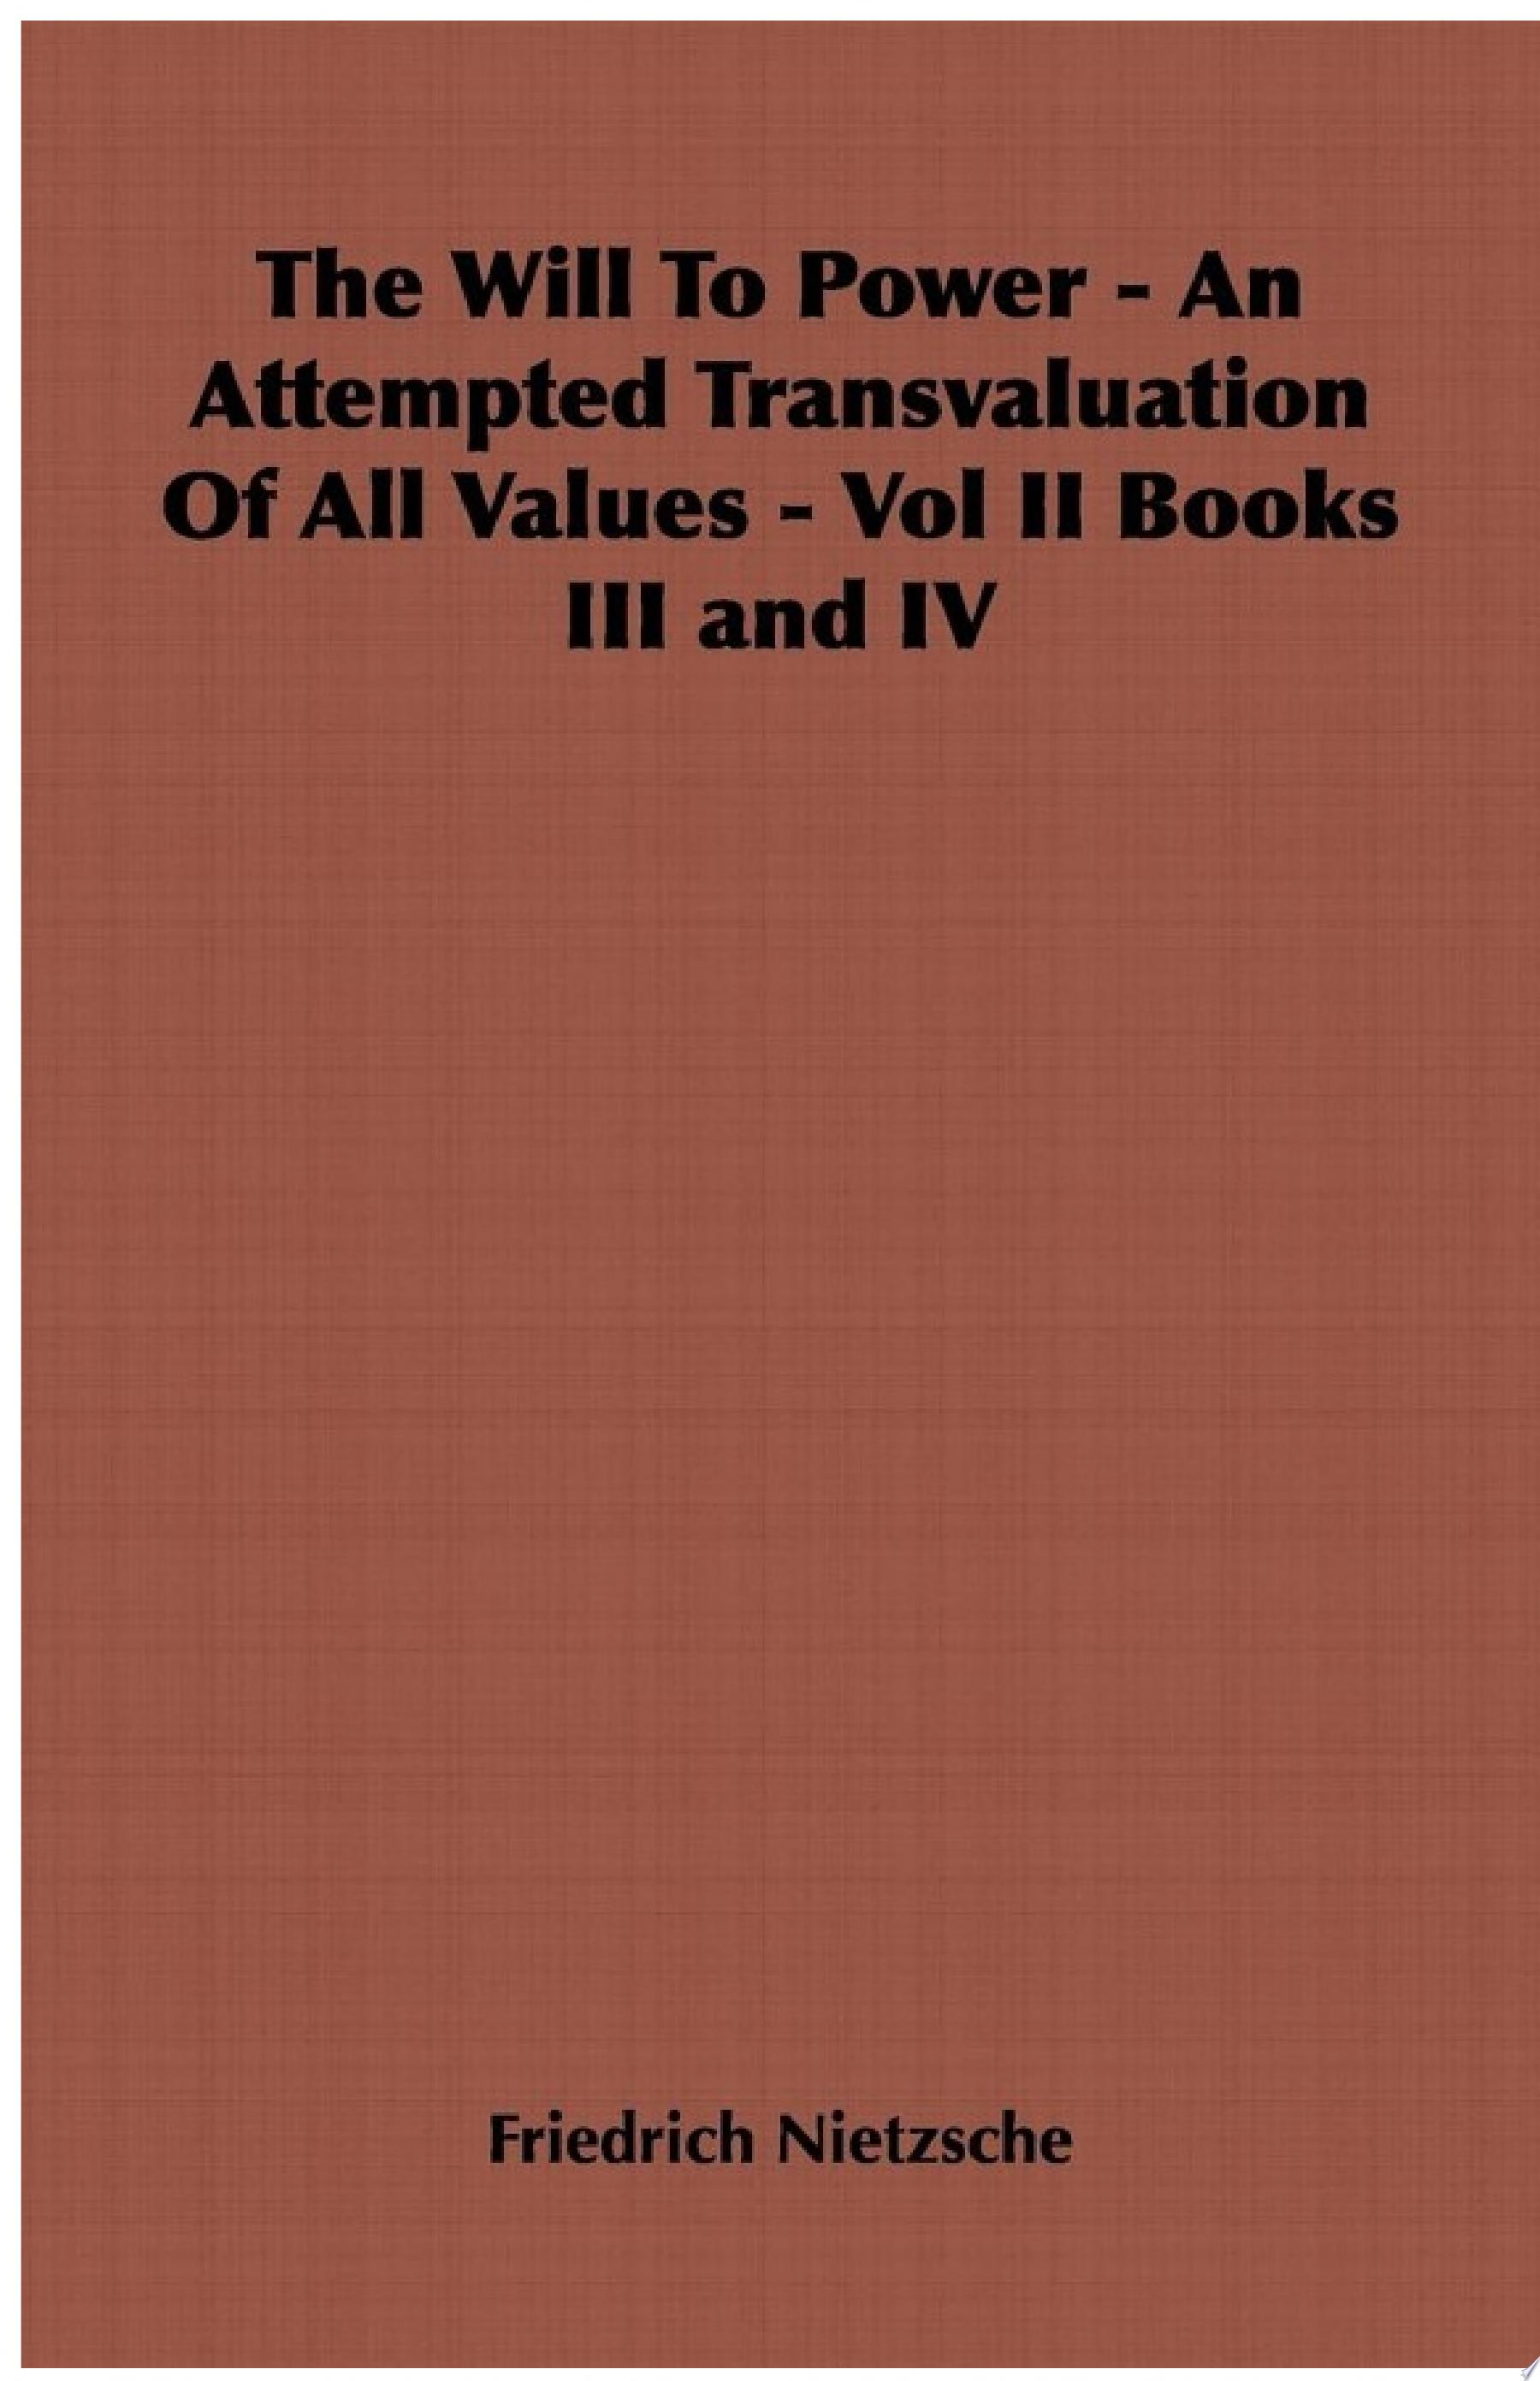 The Will to Power   An Attempted Transvaluation of All Values   Vol II Books III and IV